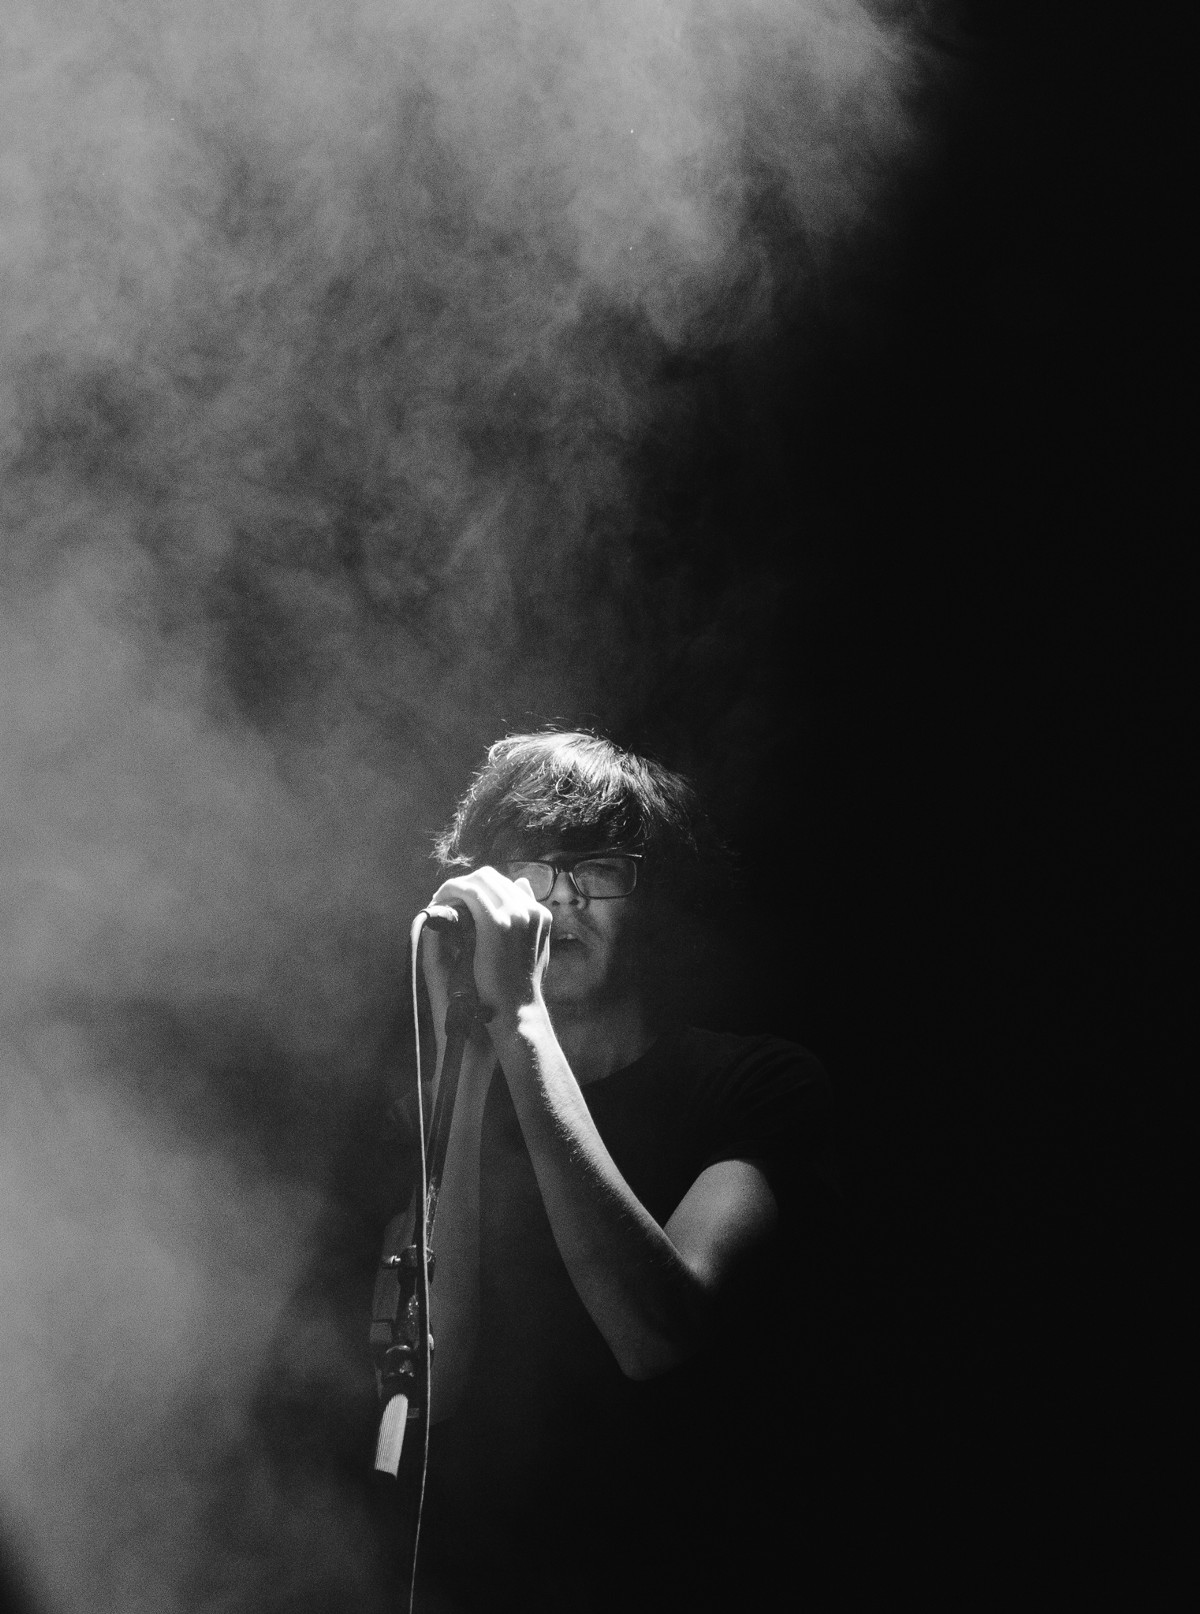 Concert Review: Naked Giants and Car Seat Headrest delight